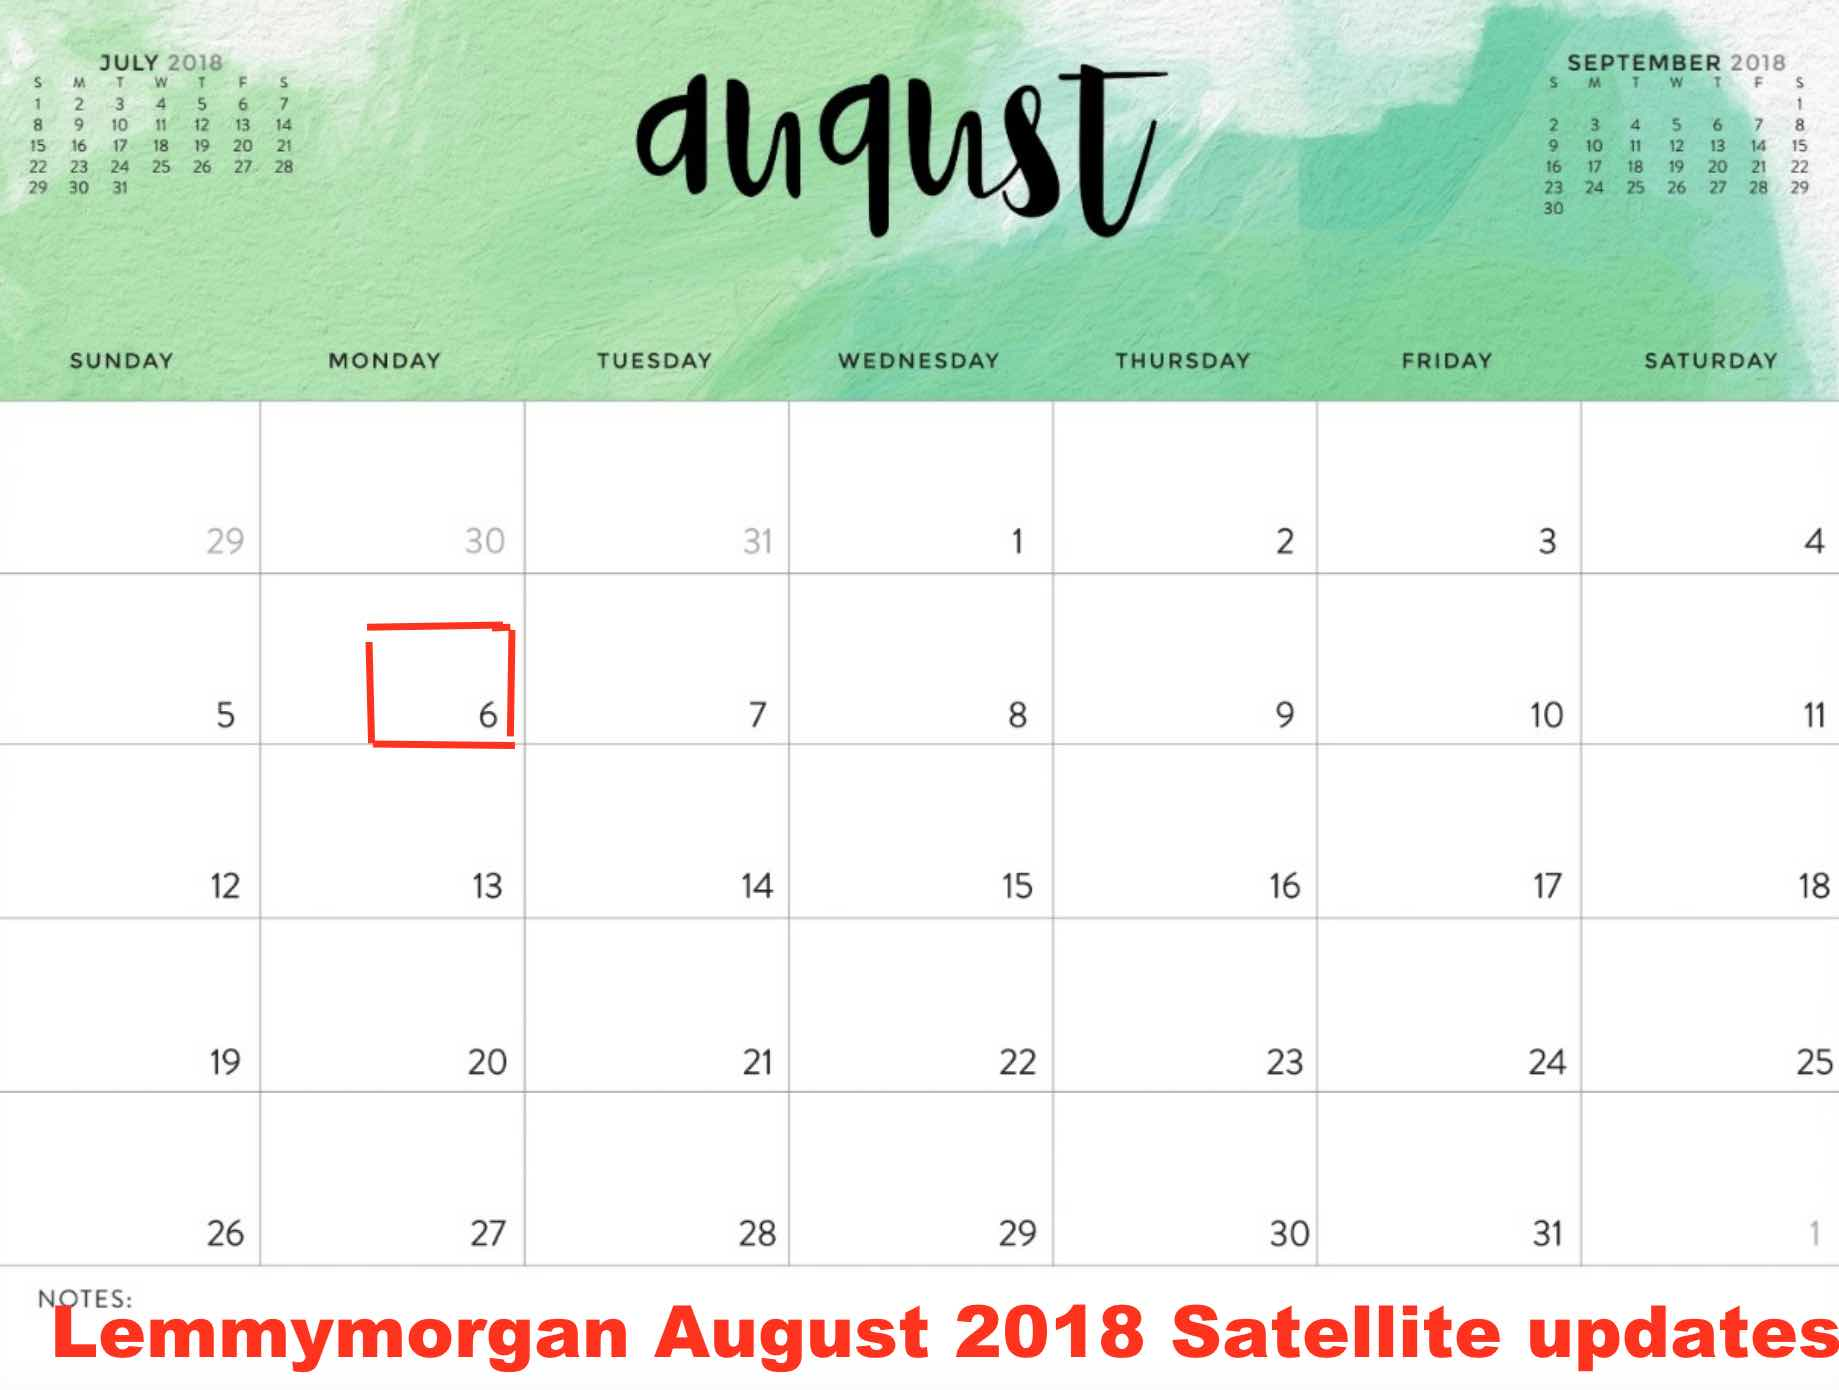 Lemmy Morgan Soccer season August 2018 Update: News on Satellite TV, IPTV, official payTV and lots more